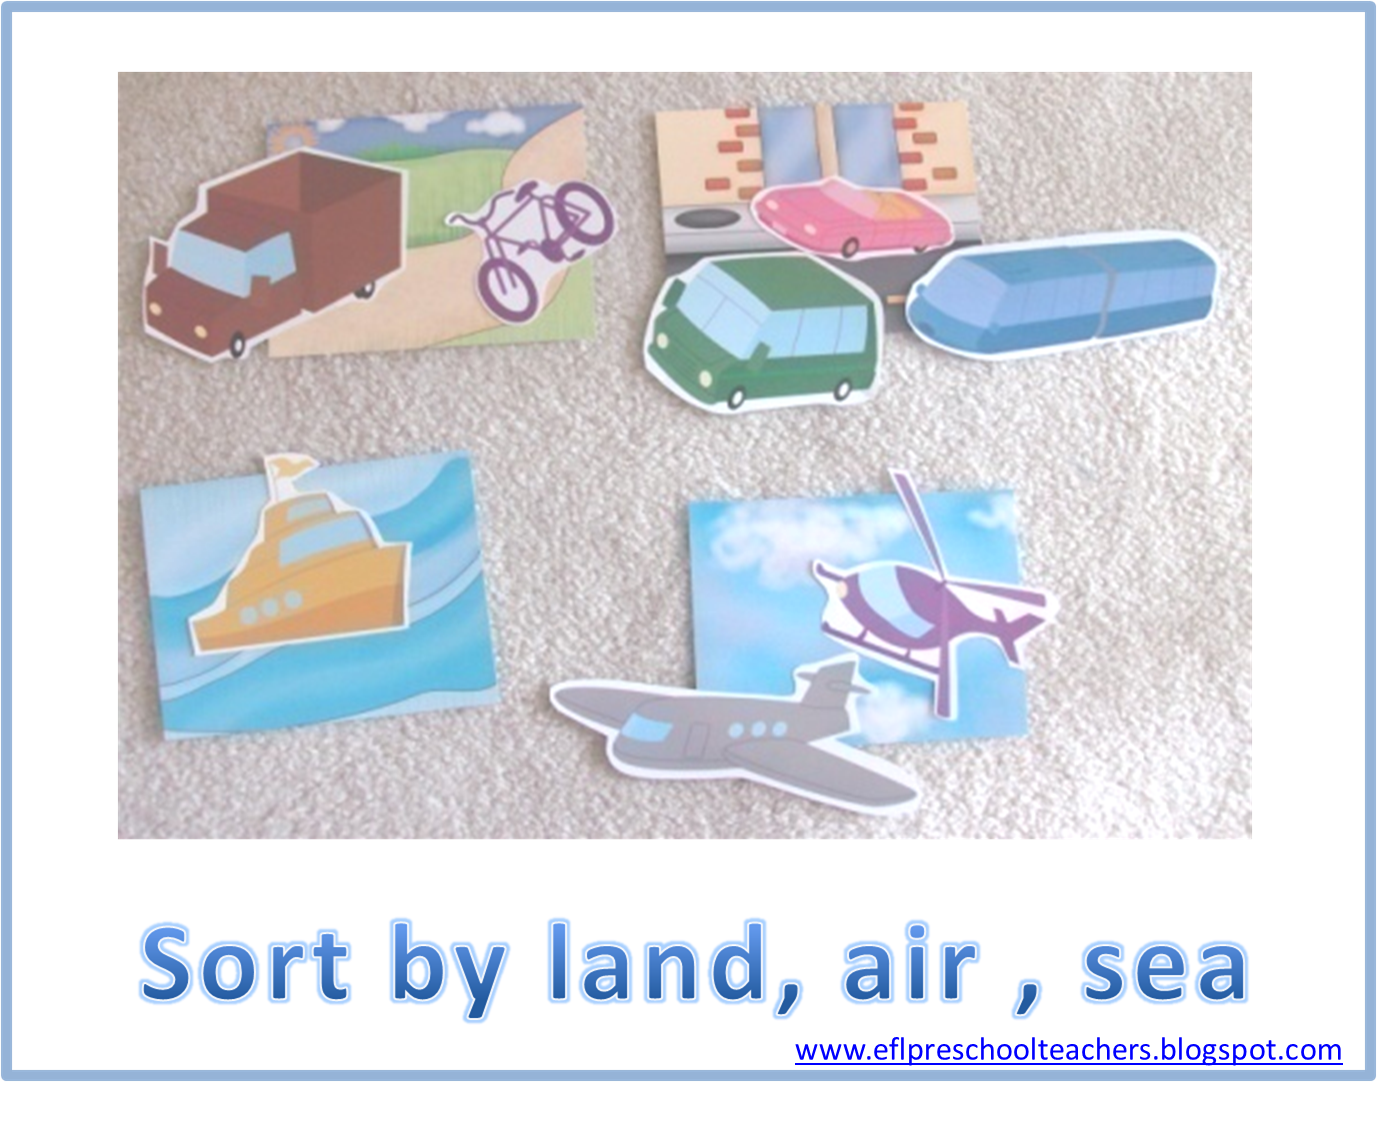 Activity Sorting By Land Air Sea Images